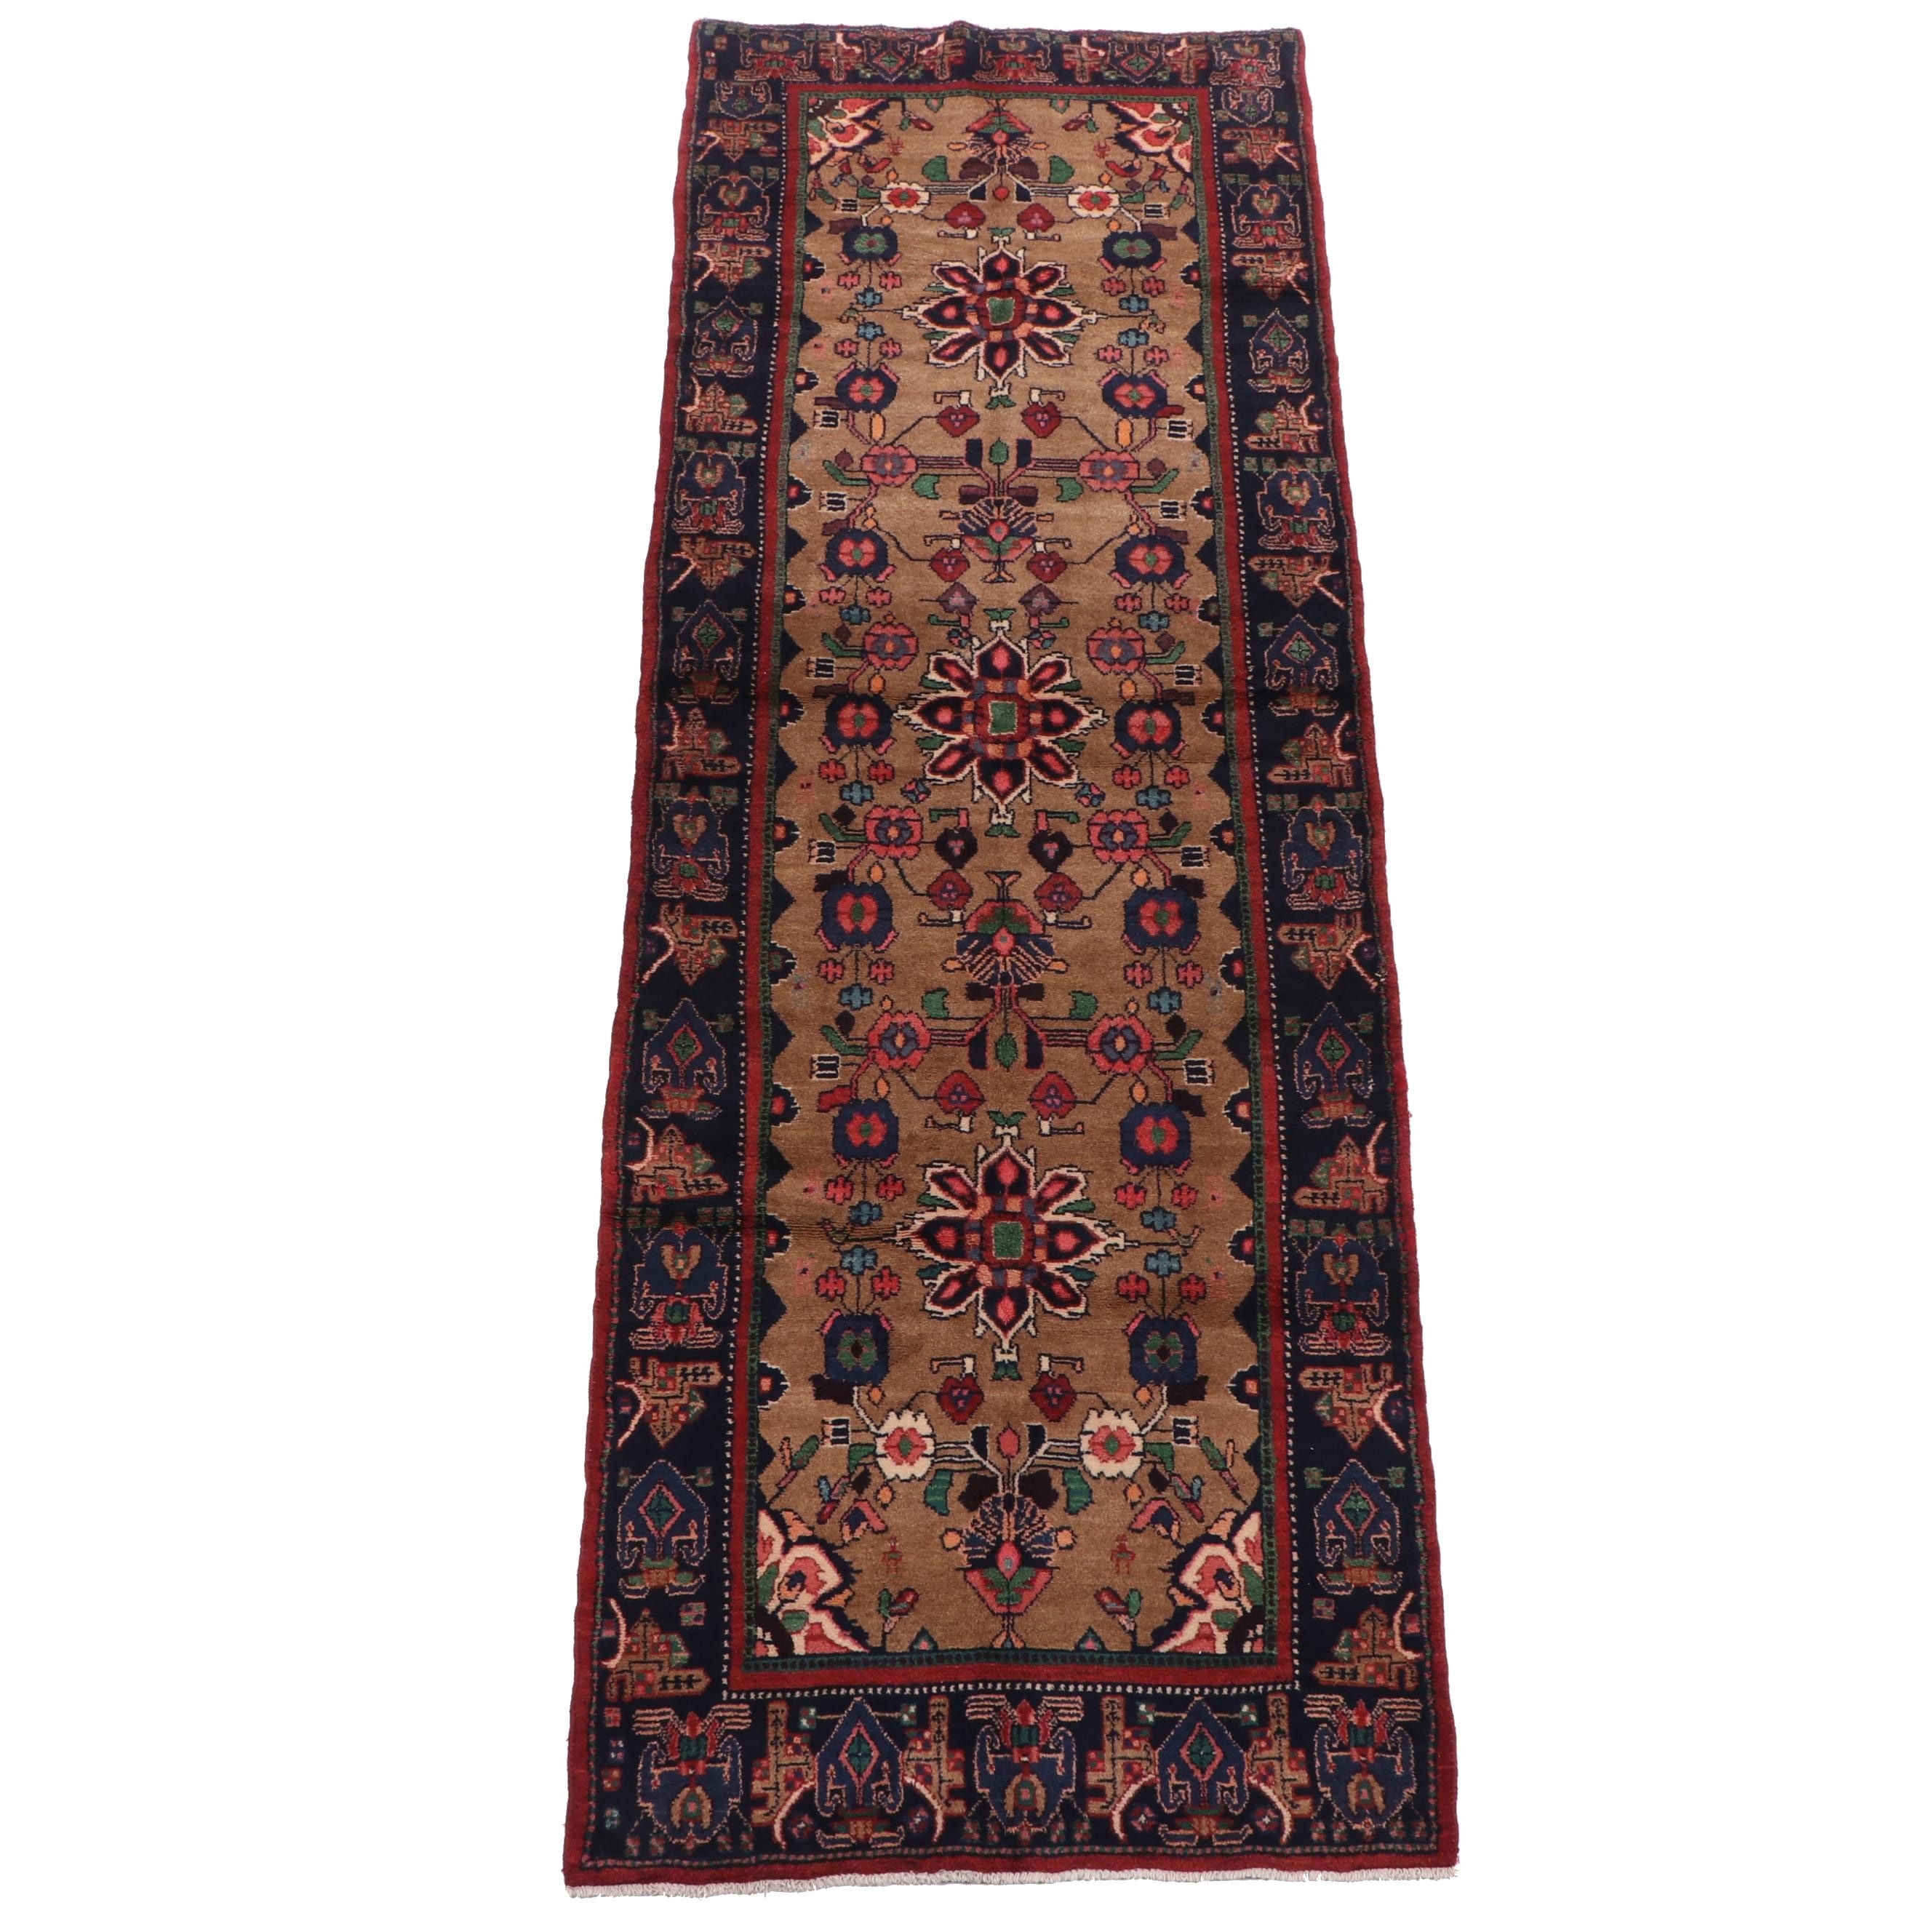 Hand-Knotted Wool Carpet Runner